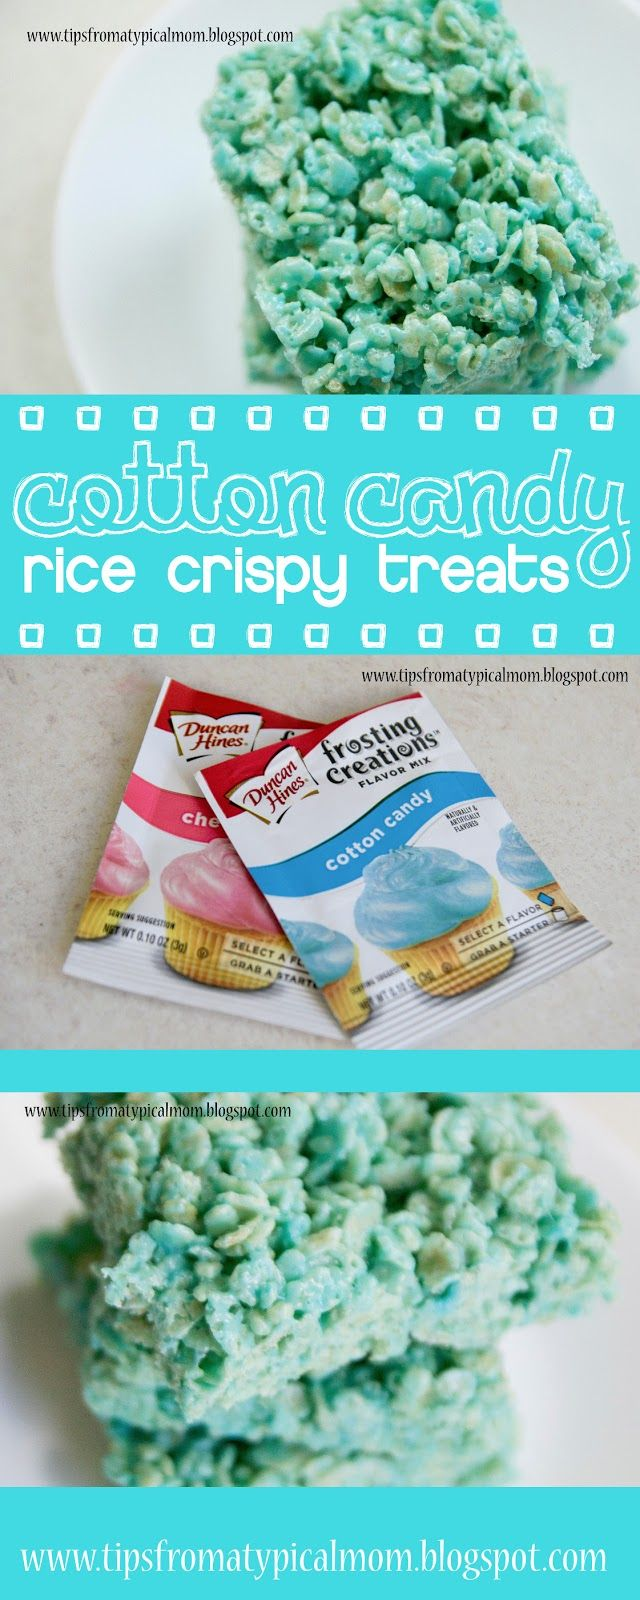 I love the idea of using the frosting creations flavor packets to the treats. I'd like to try a different flavor though